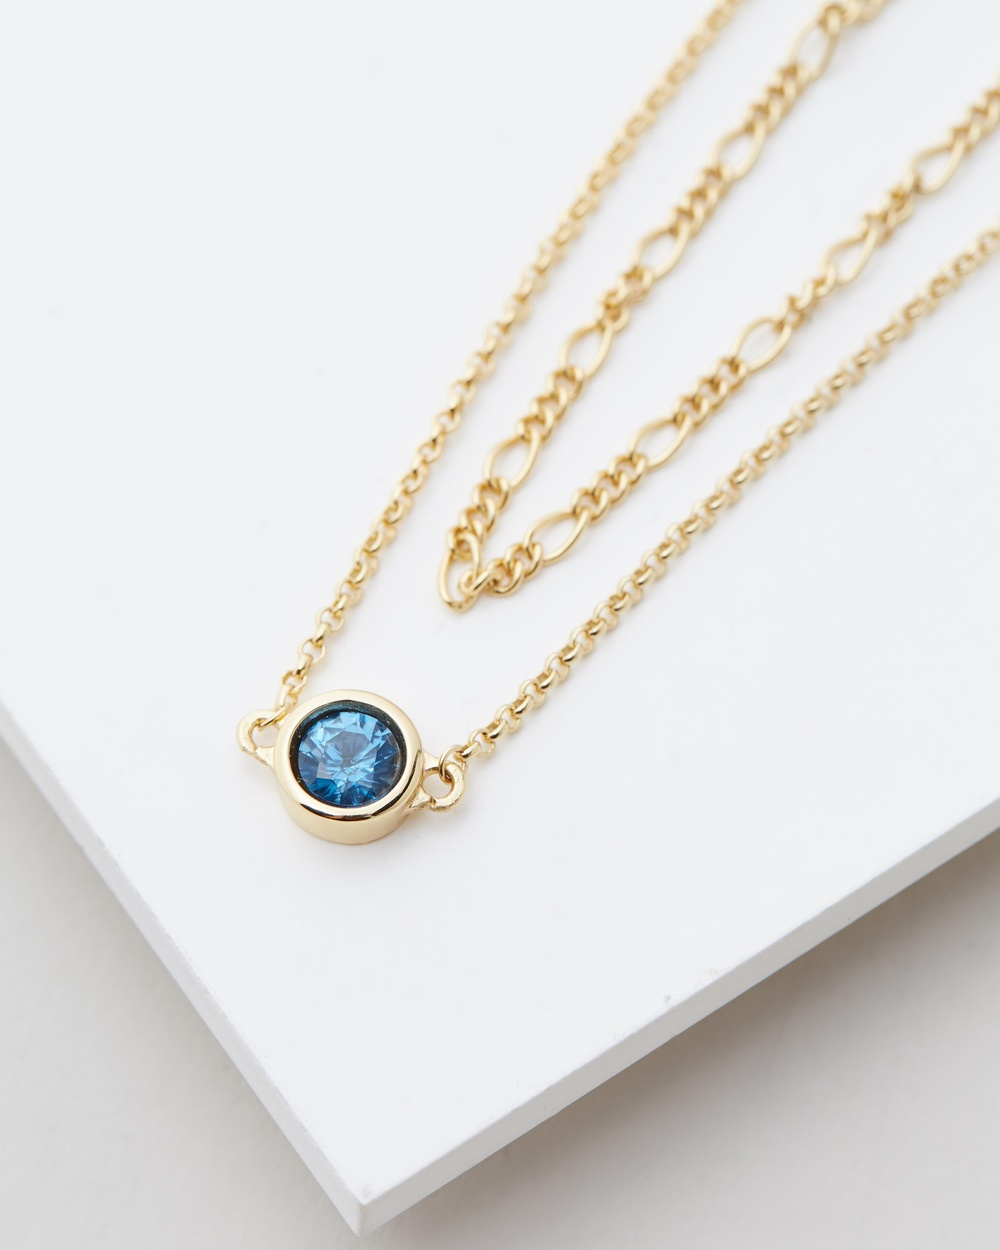 Serge DeNimes Blue Moon Necklace Jewellery Gold